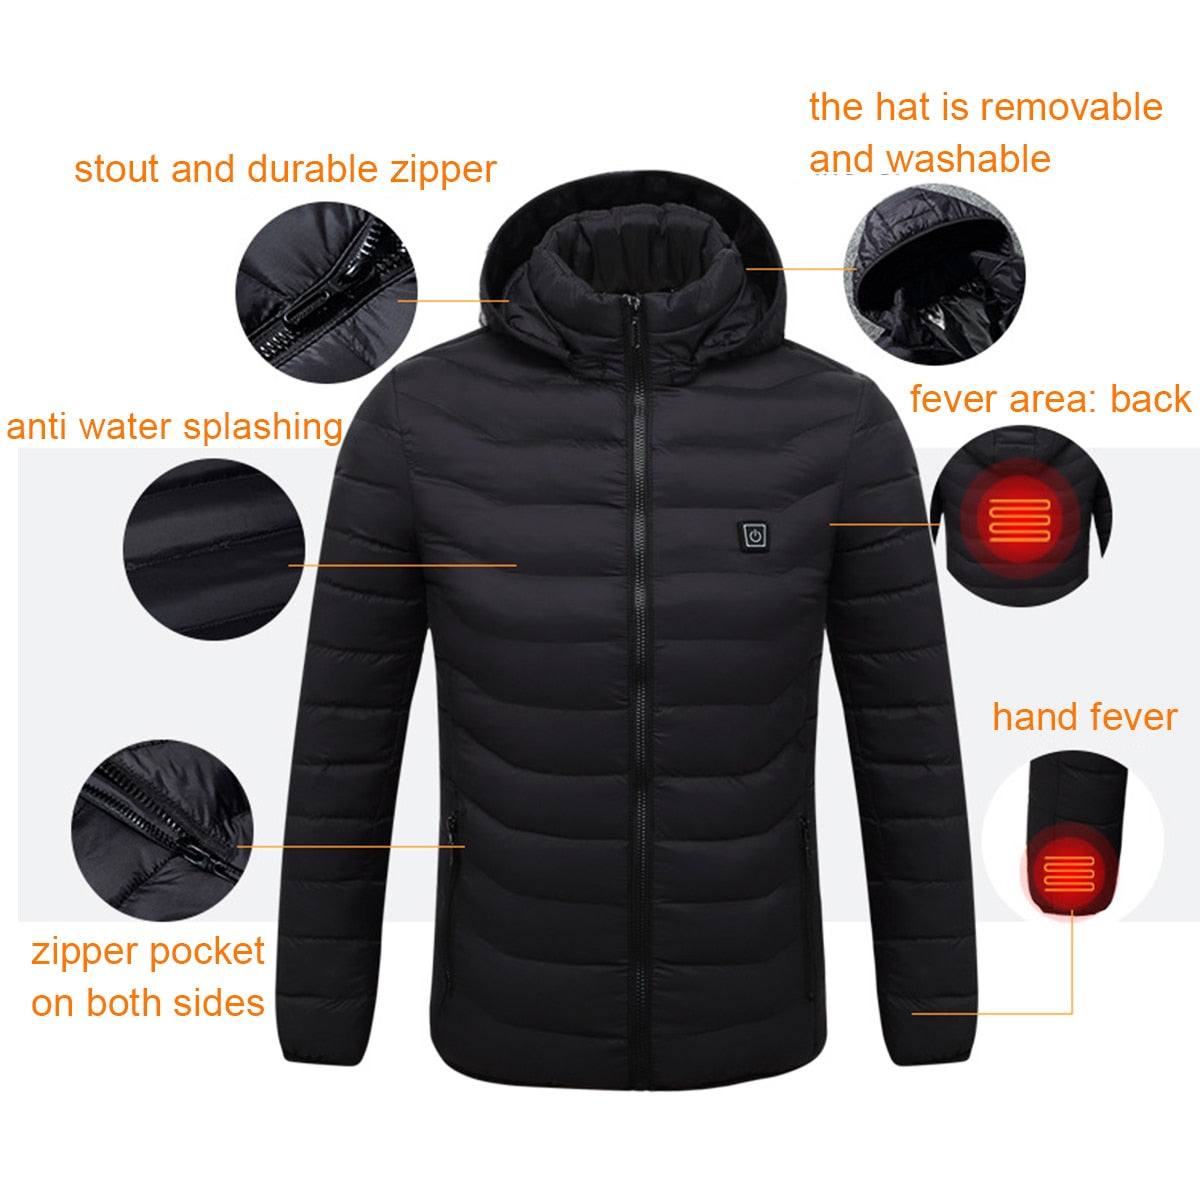 Men's Winter Heated USB Hooded Work Jacket